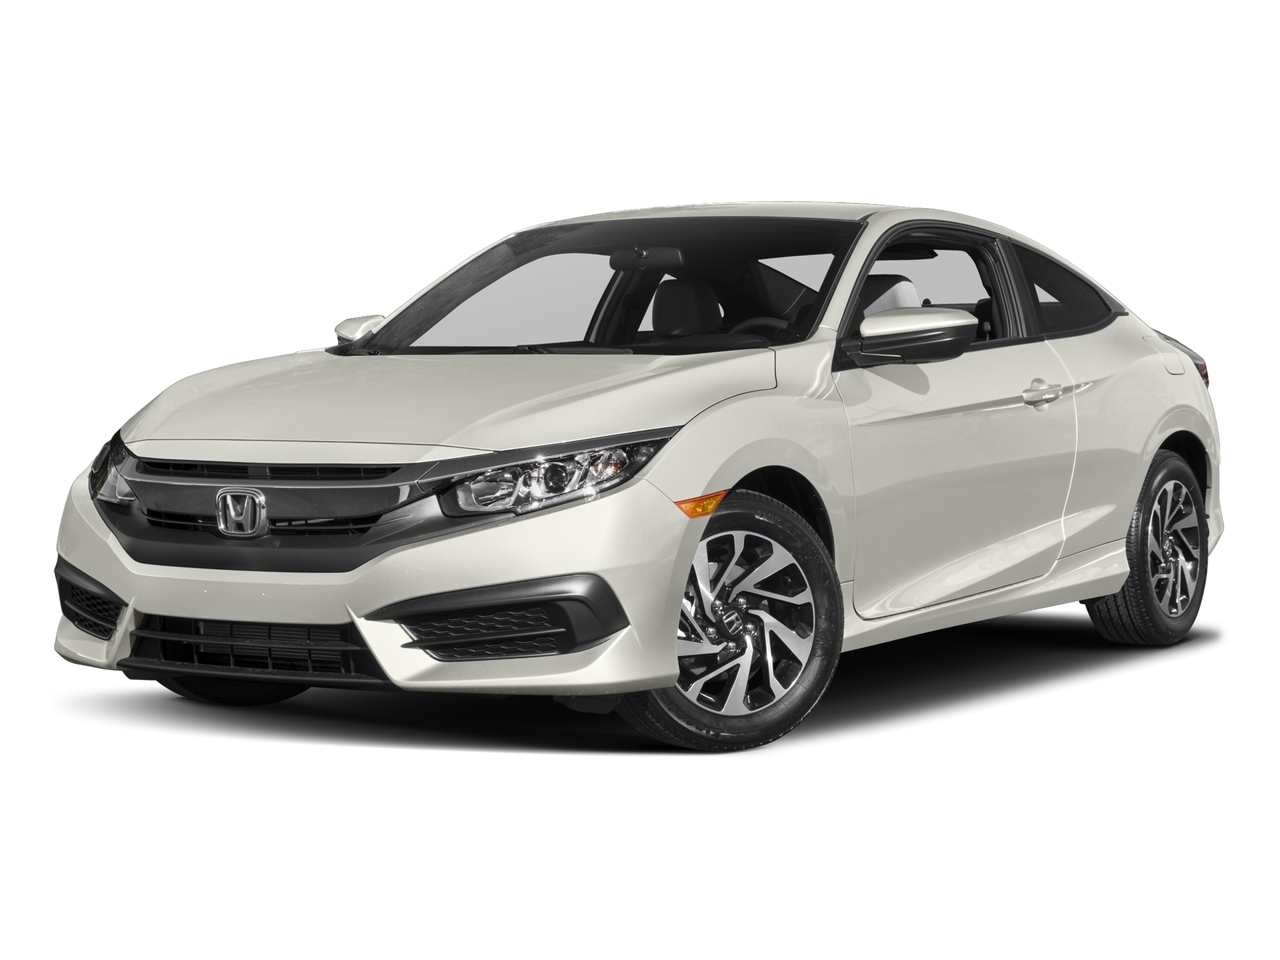 2017 Honda Civic Coupe - Fort Smith, AR